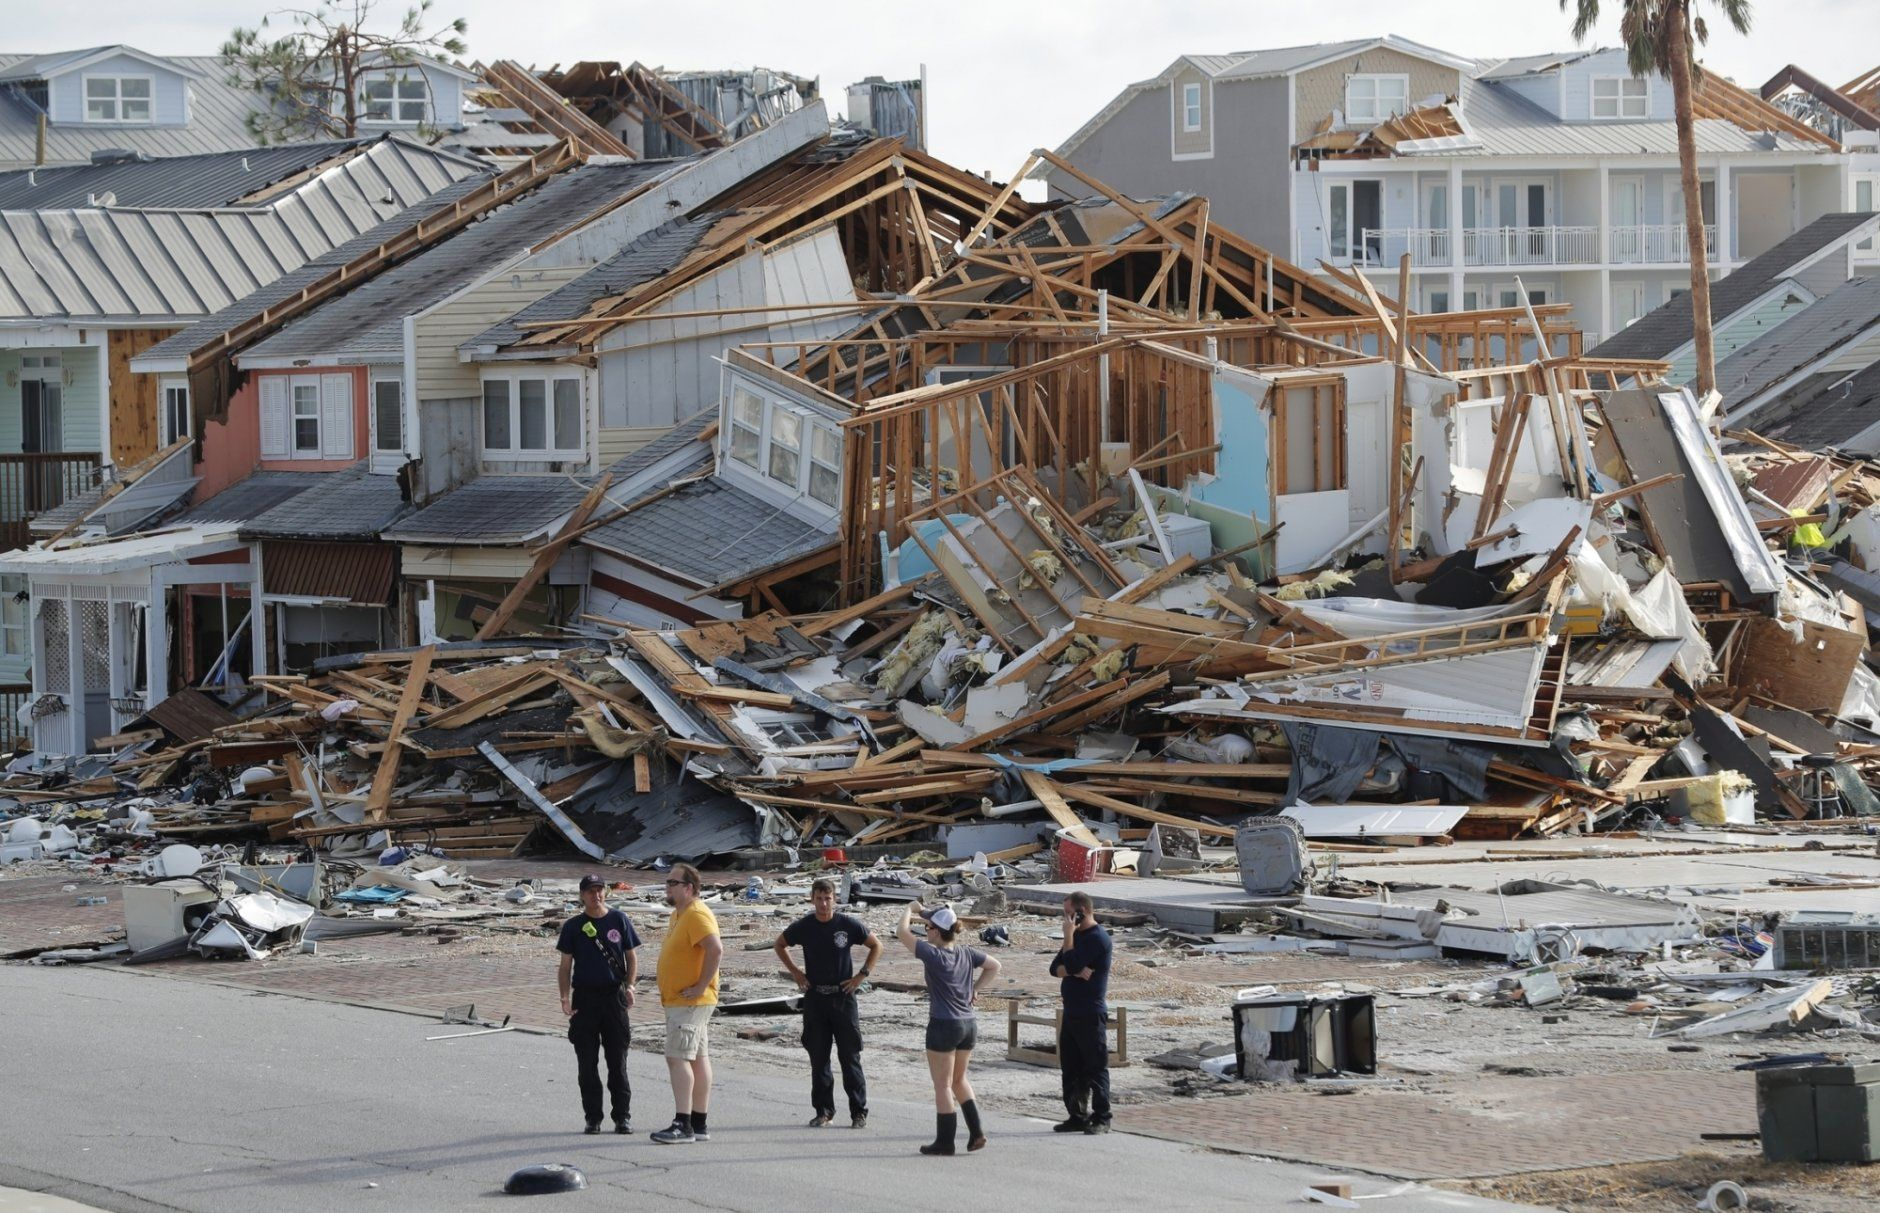 FILE-In this Thursday, Oct. 11, 2018. file photo, rescue personnel perform a search in the aftermath of Hurricane Michael in Mexico Beach, Fla. Weather forecasters have posthumously upgraded last fall's Hurricane Michael from a Category 4 storm to a Category 5. The National Oceanic and Atmospheric Administration announced the storm's upgraded status Friday, making Michael only the fourth storm on record to have hit the U.S. as a Category 5 hurricane. (AP Photo/Gerald Herbert, File)